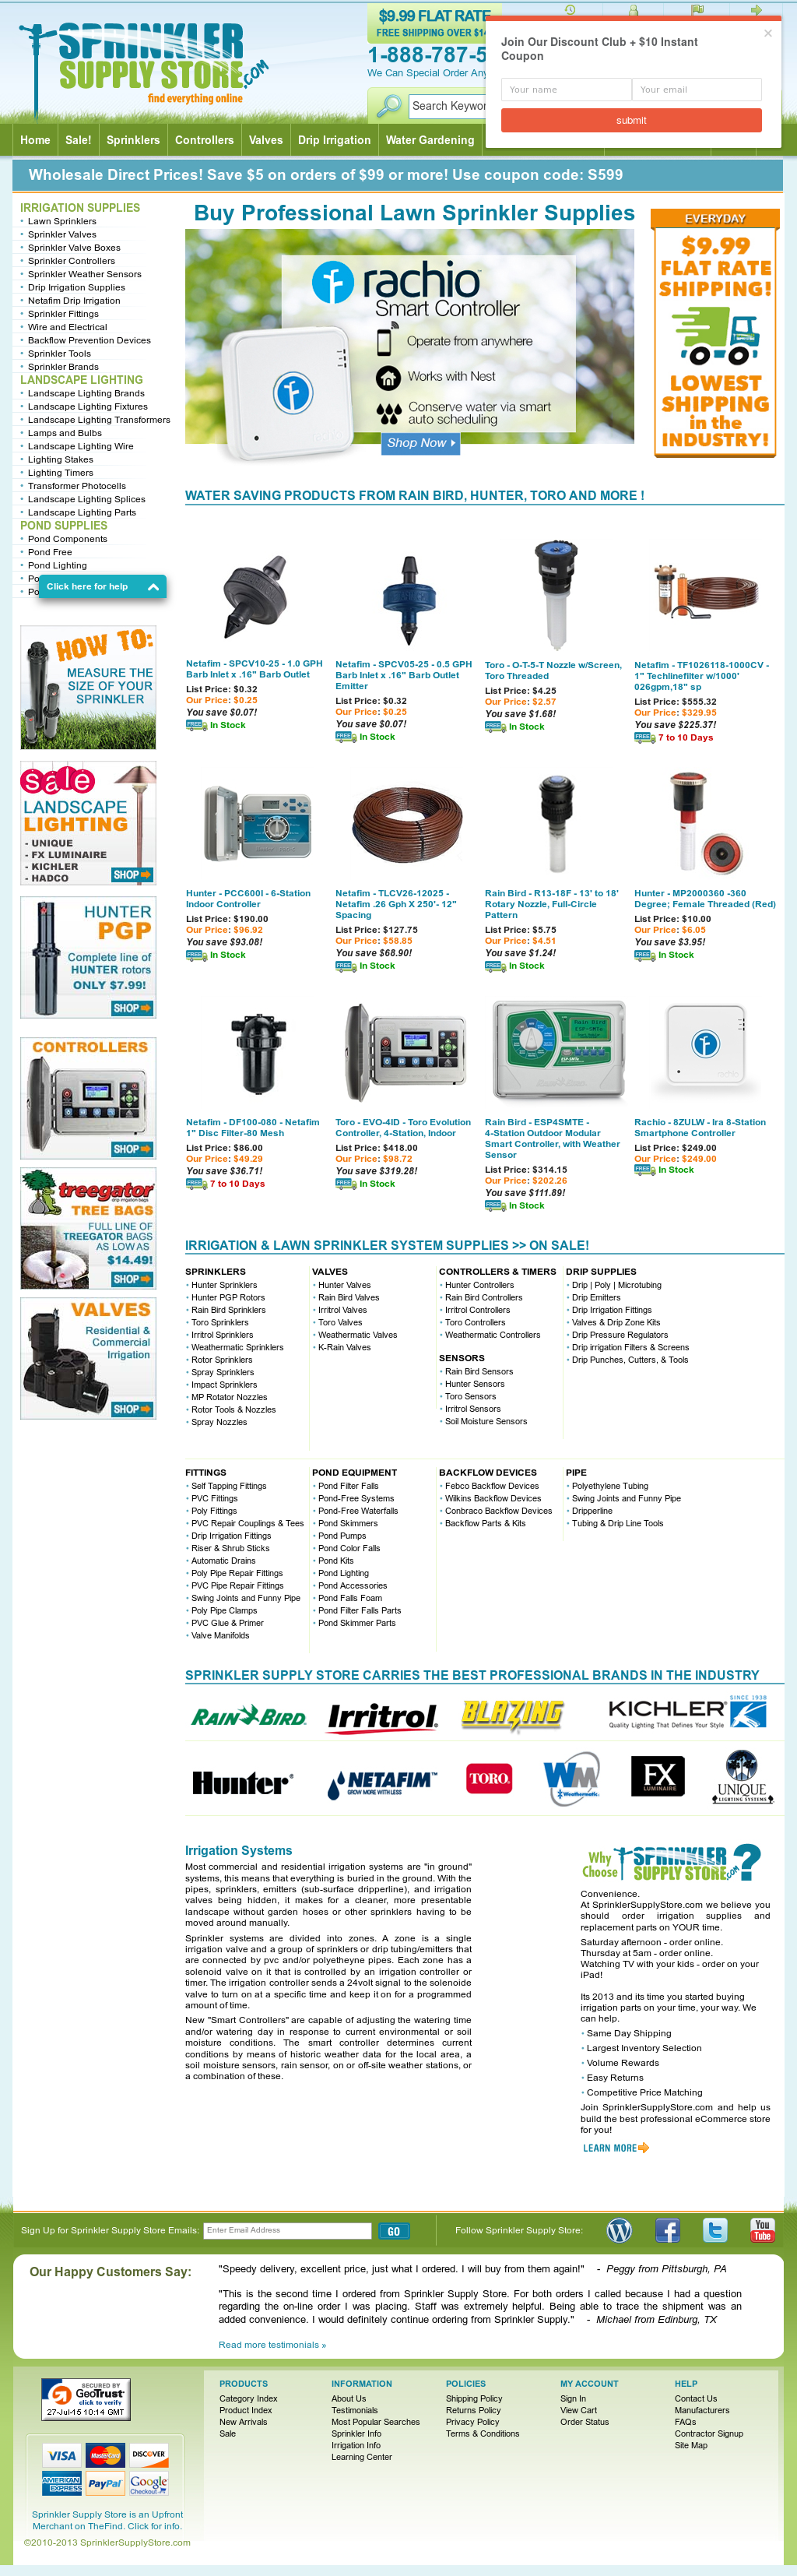 The largest selection of underground sprinklers including repair parts